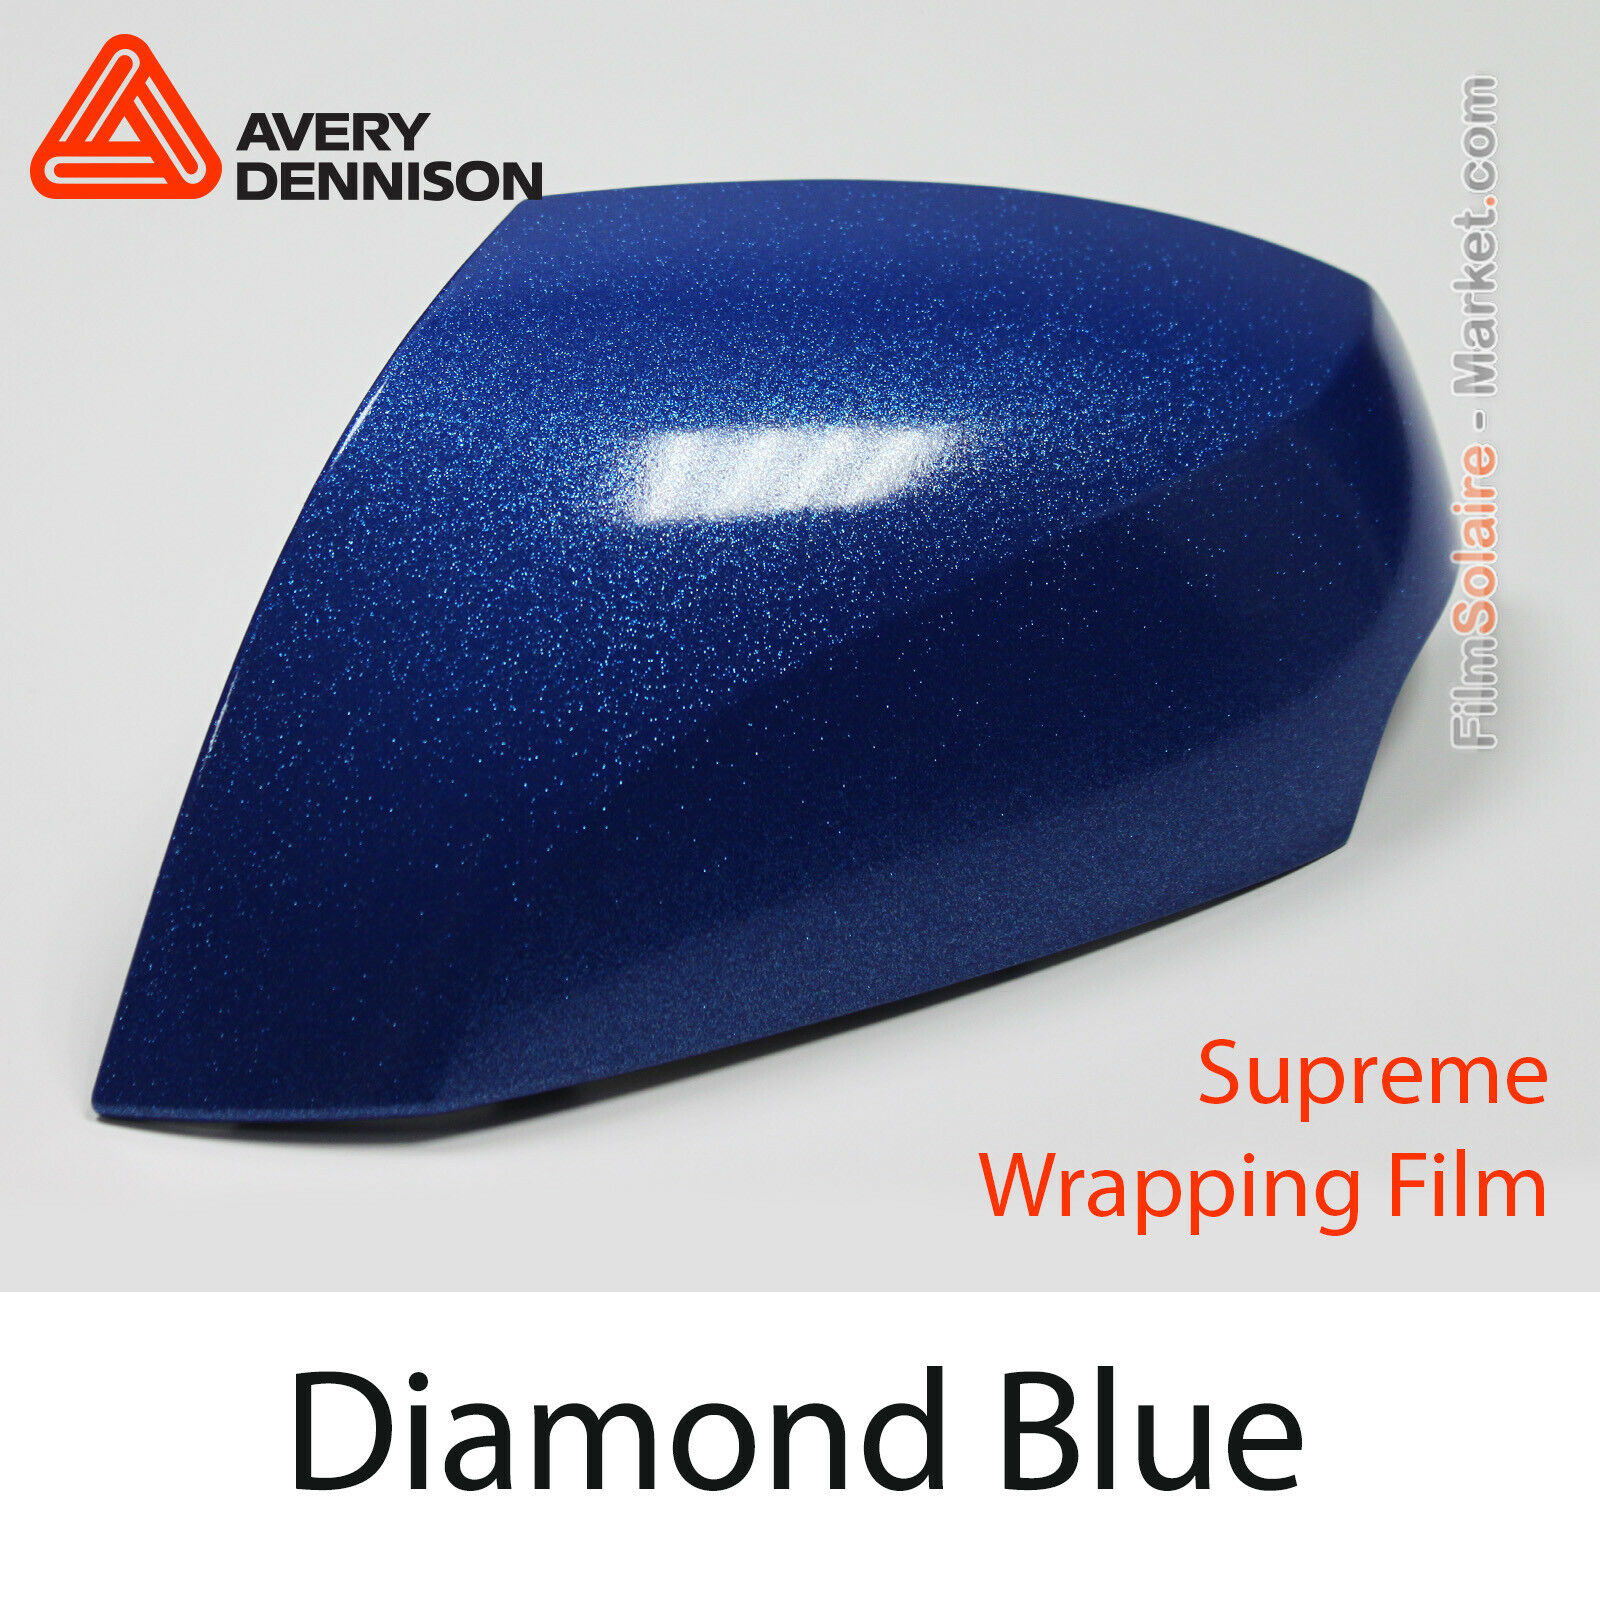 Diamante azul, Avery Dennison Supreme Vinil Lámina, Total Covering, Bd2890001